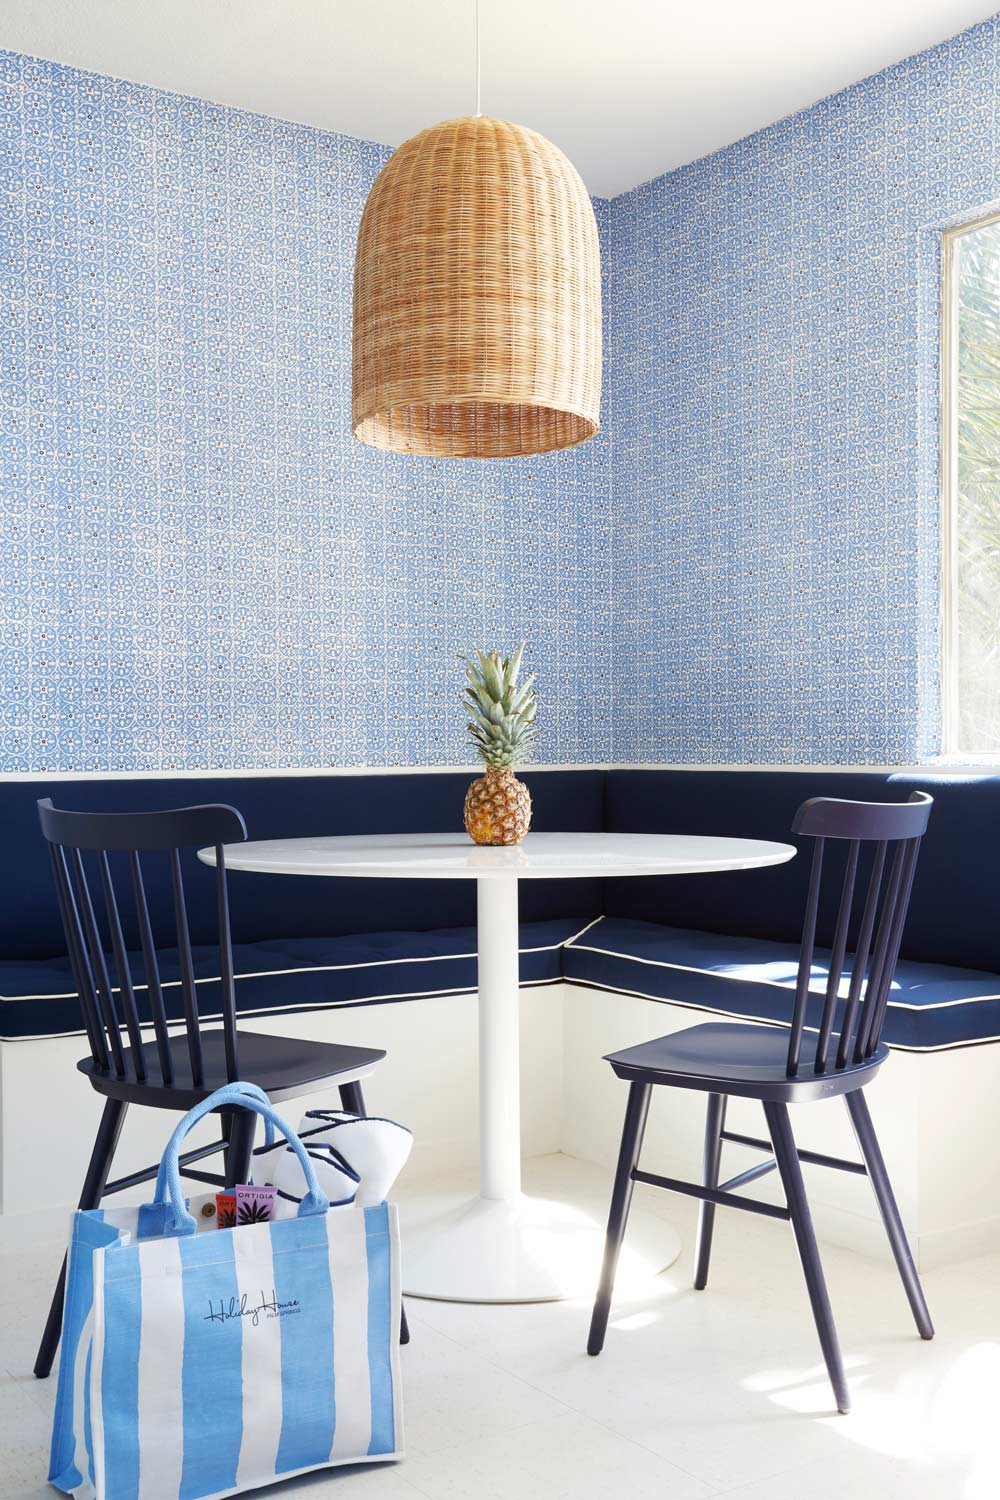 dining area with banquette